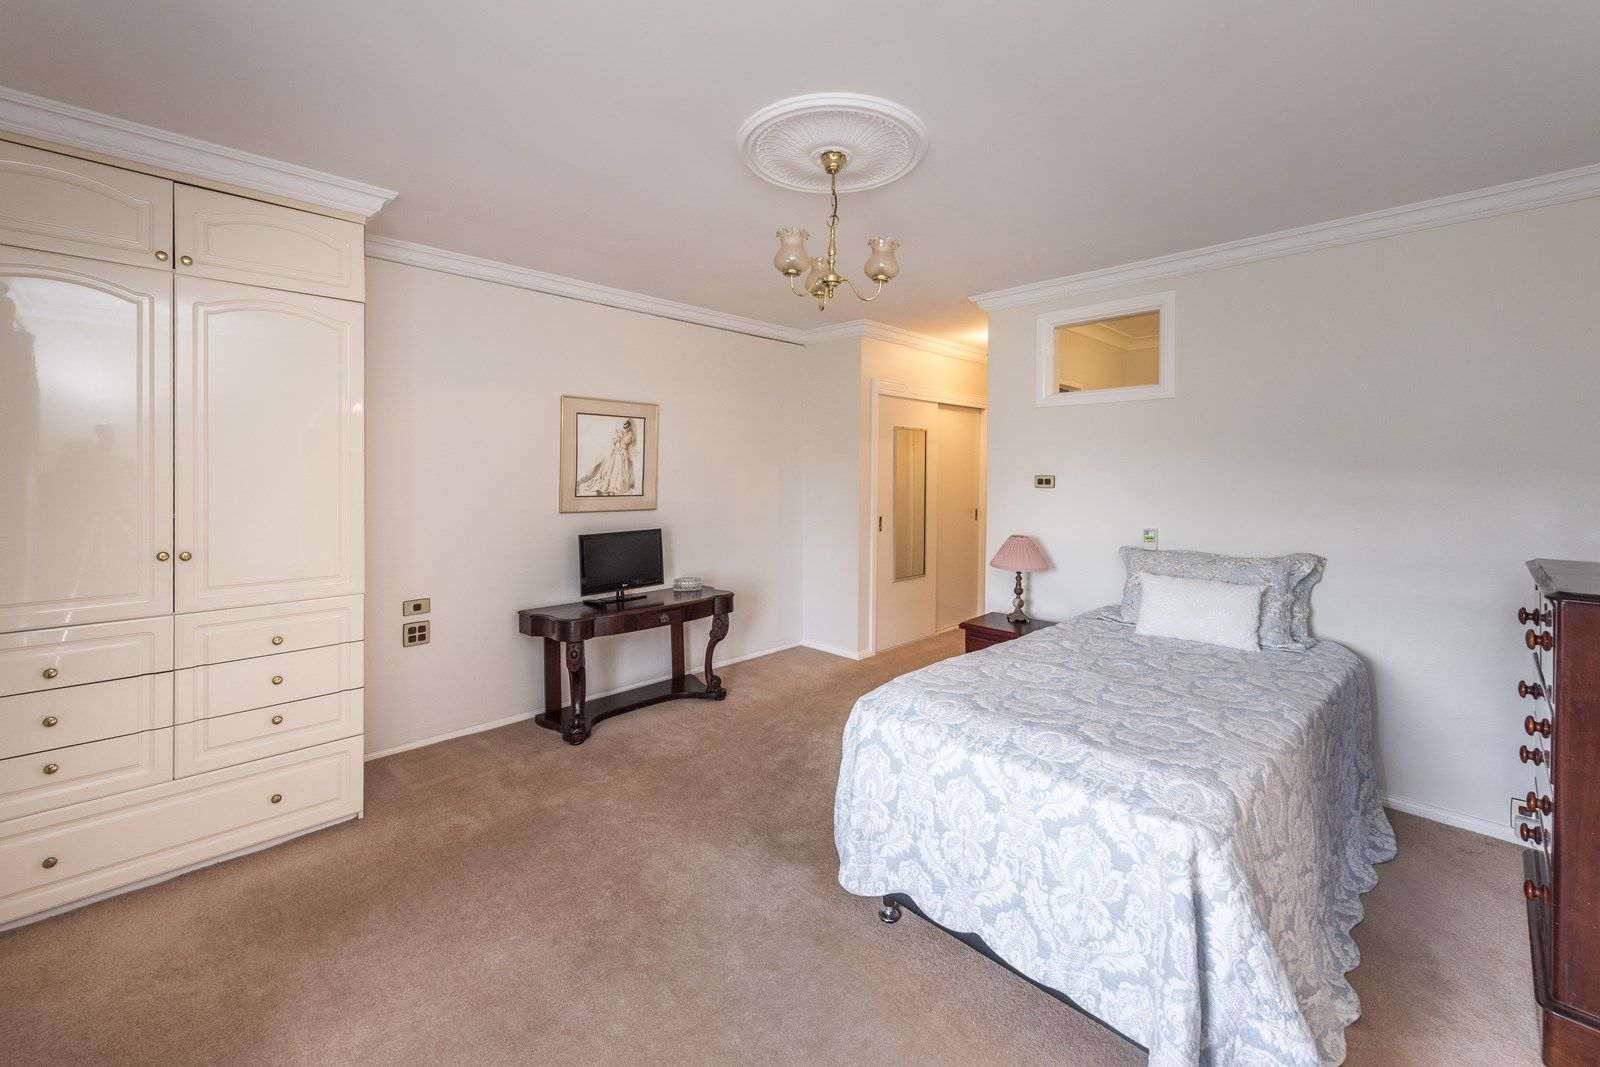 205/502 Moss Vale Road, Bowral NSW 2576, Image 1